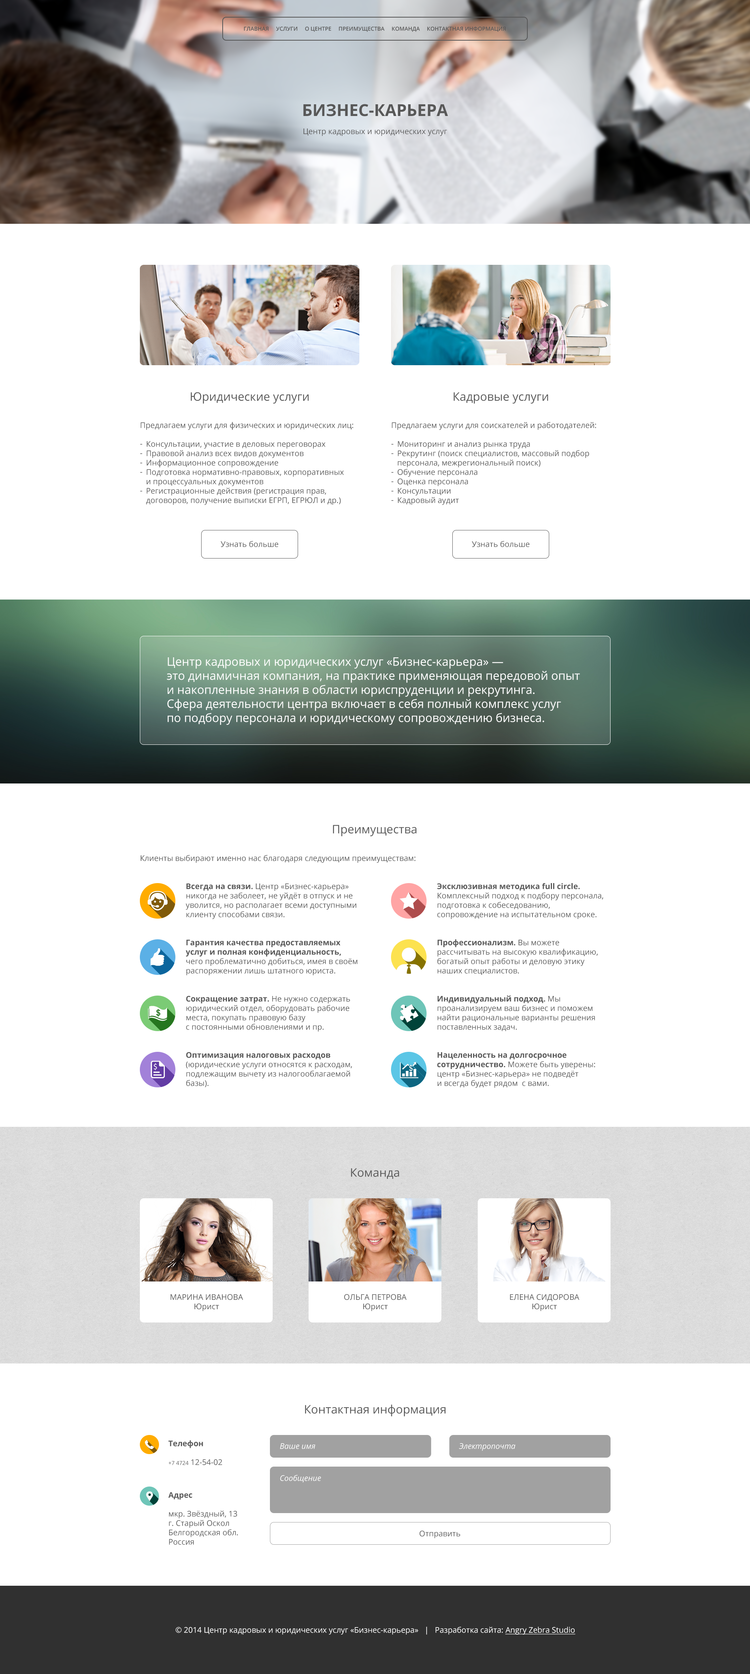 Business-Career - Main page layout